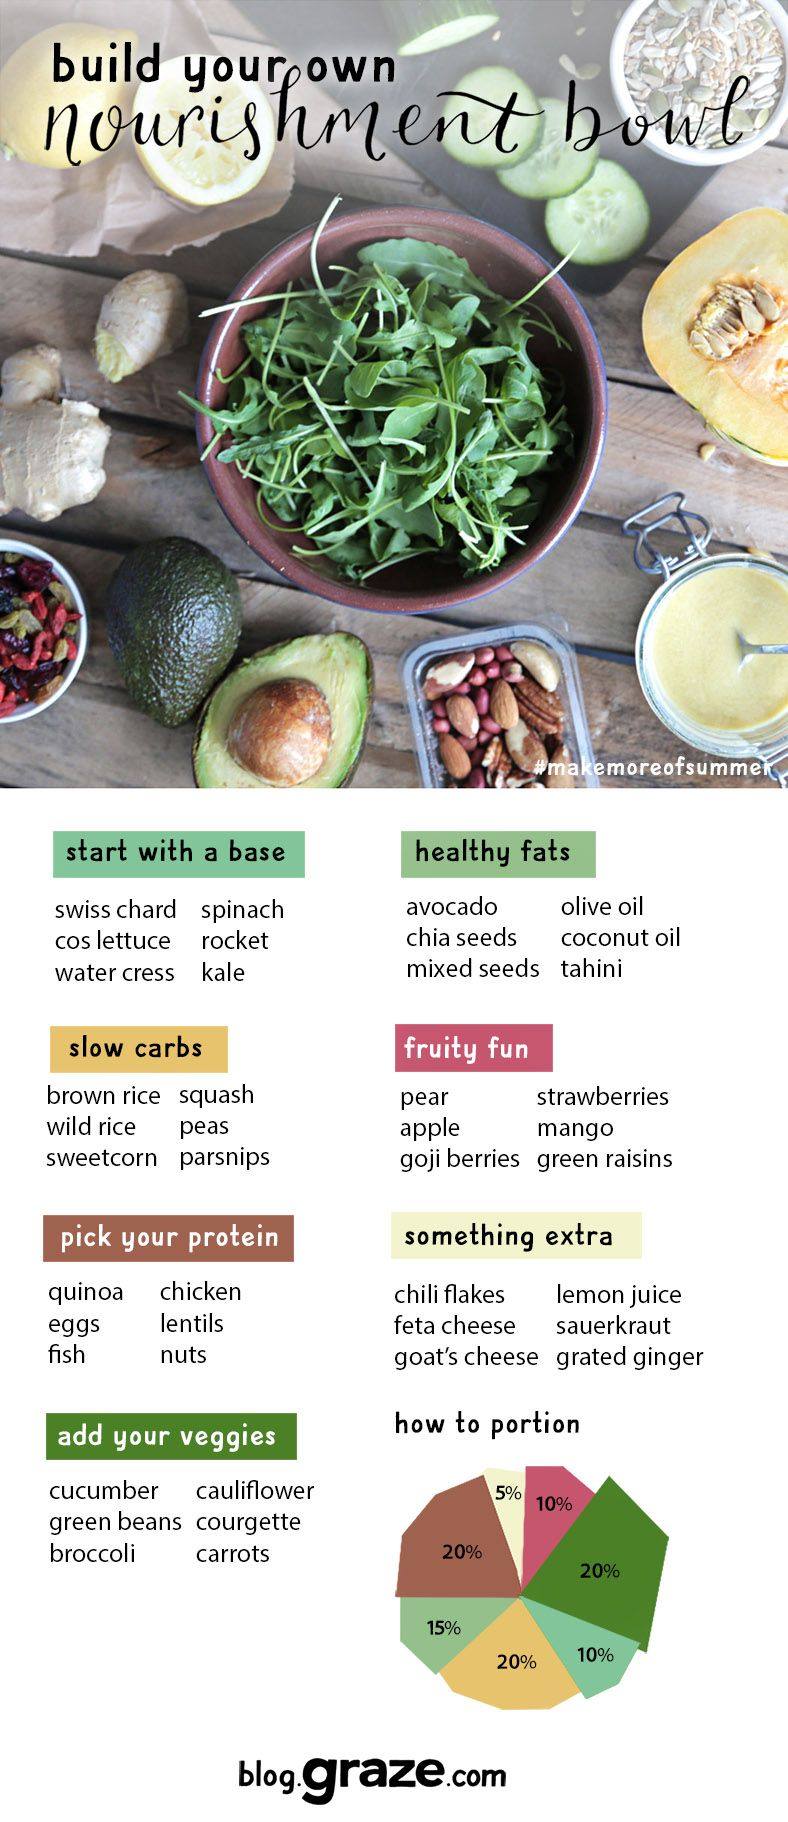 The Easy To Follow Guide From Our Nutritionist On How To Adapt Her Nourishment Bowl To Your Own Tastes Food Healthy Recipes Healthy